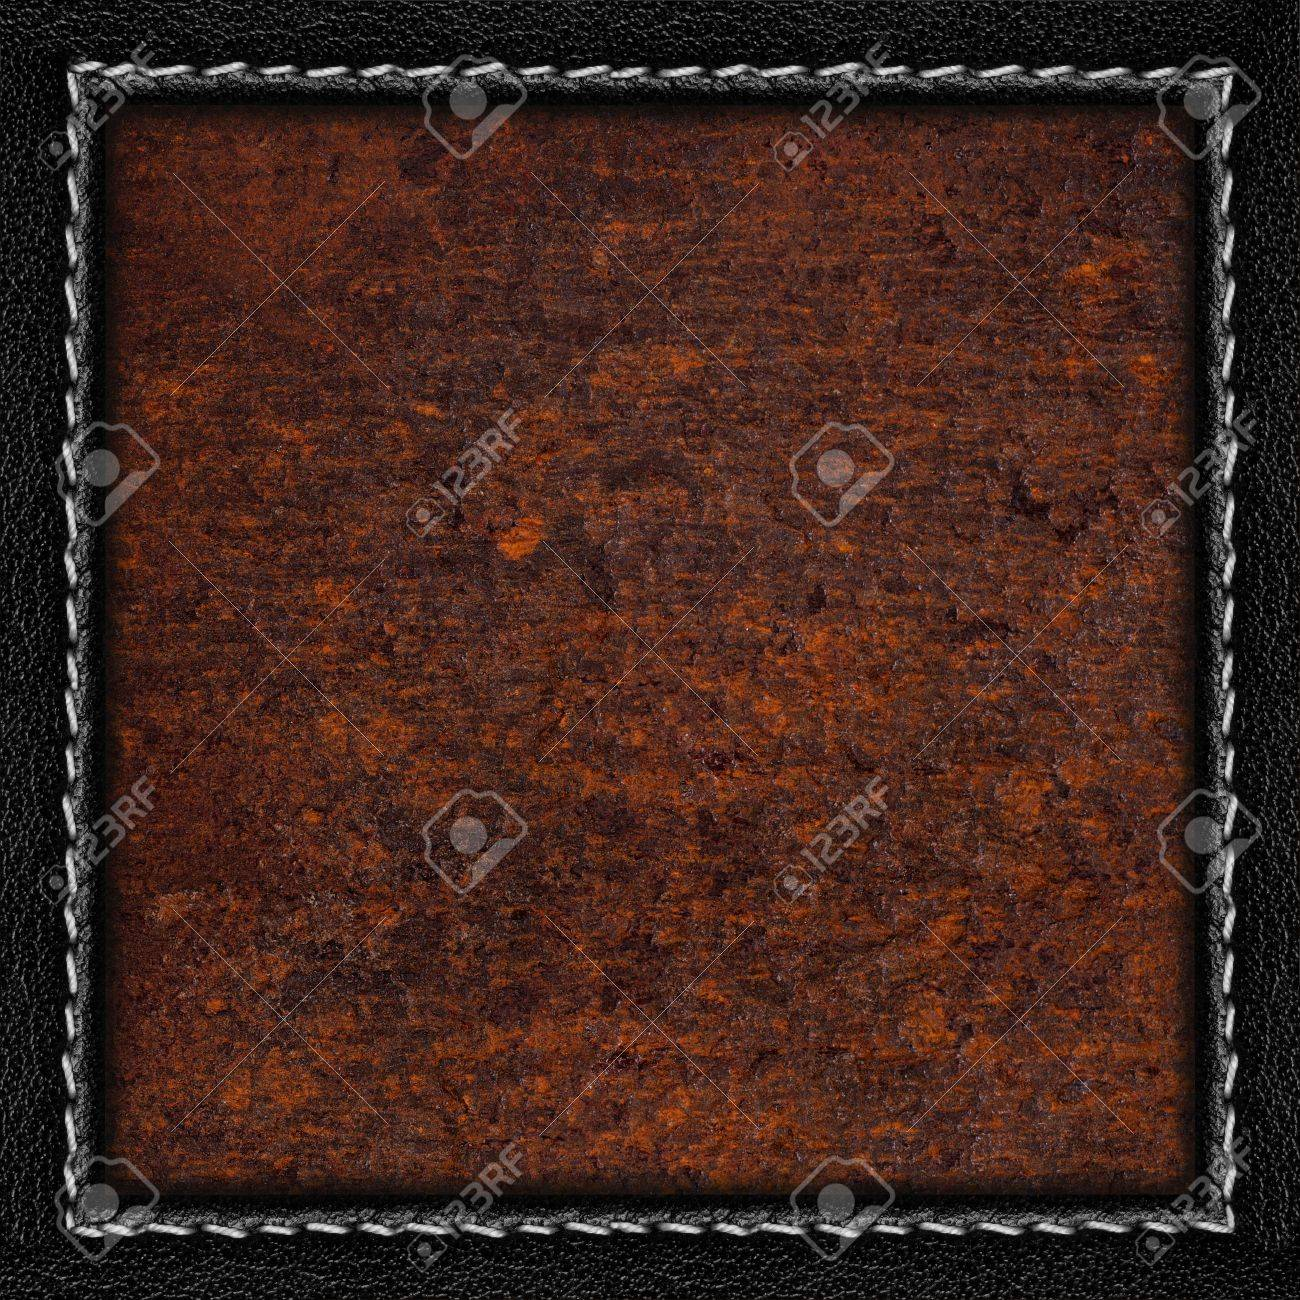 Rust Metal Sheet Background Or Iron Brown Texture In Black Leather ...